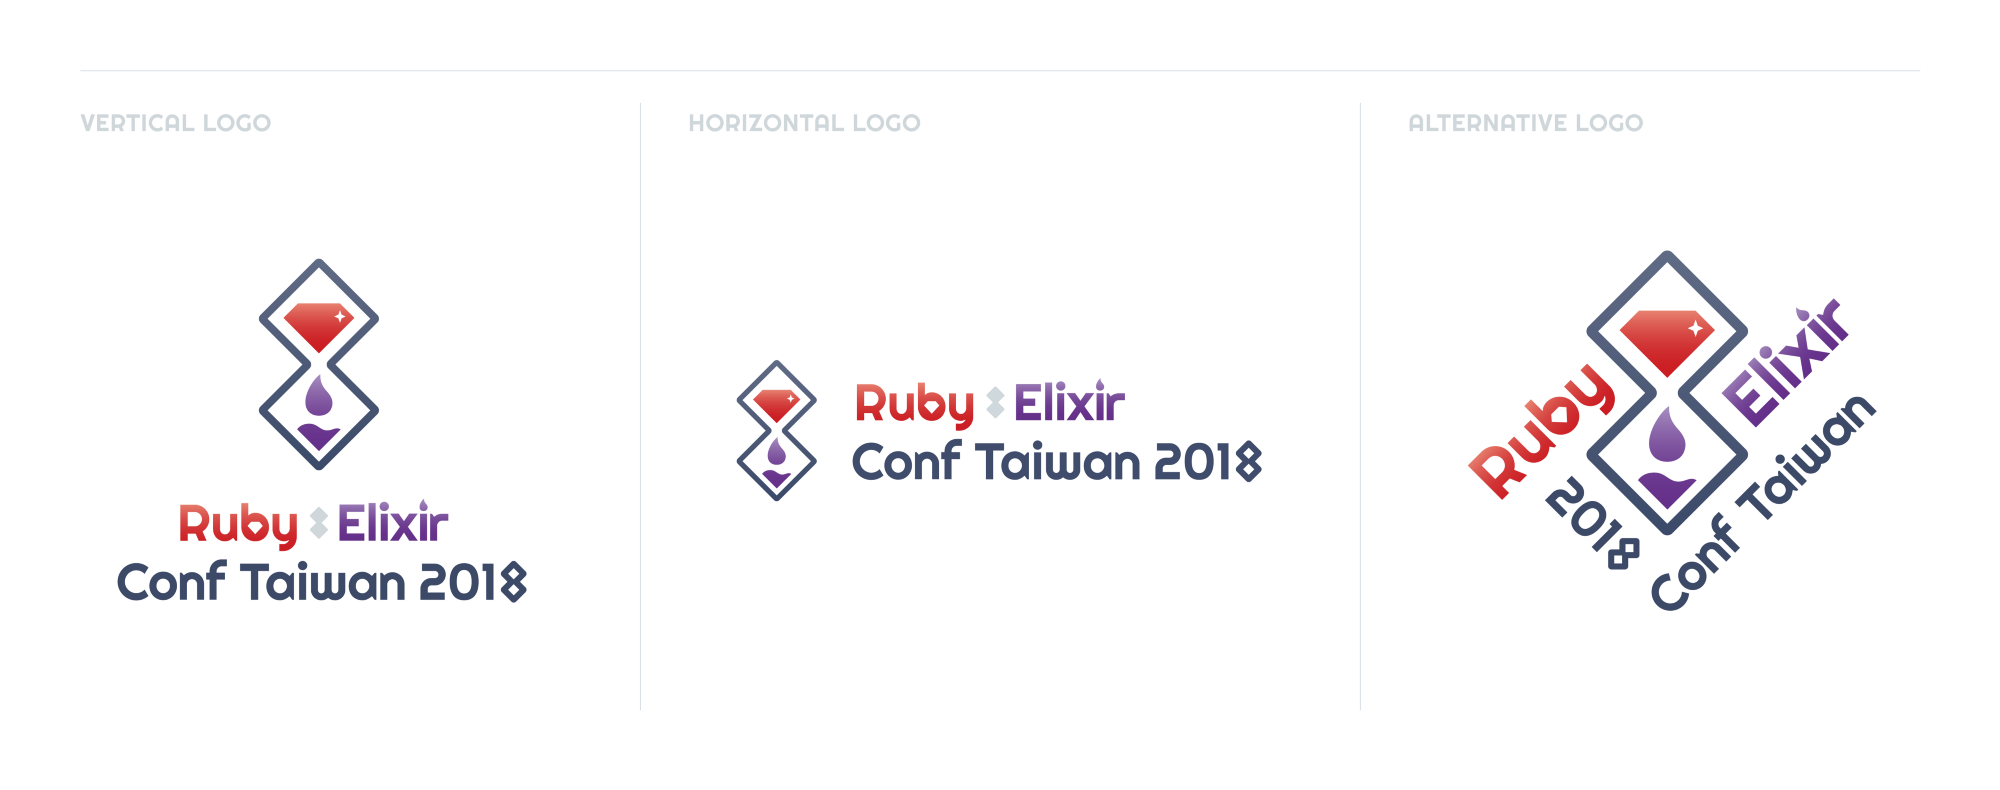 Logo Design for Ruby x Elixir Conf Taiwan 2018